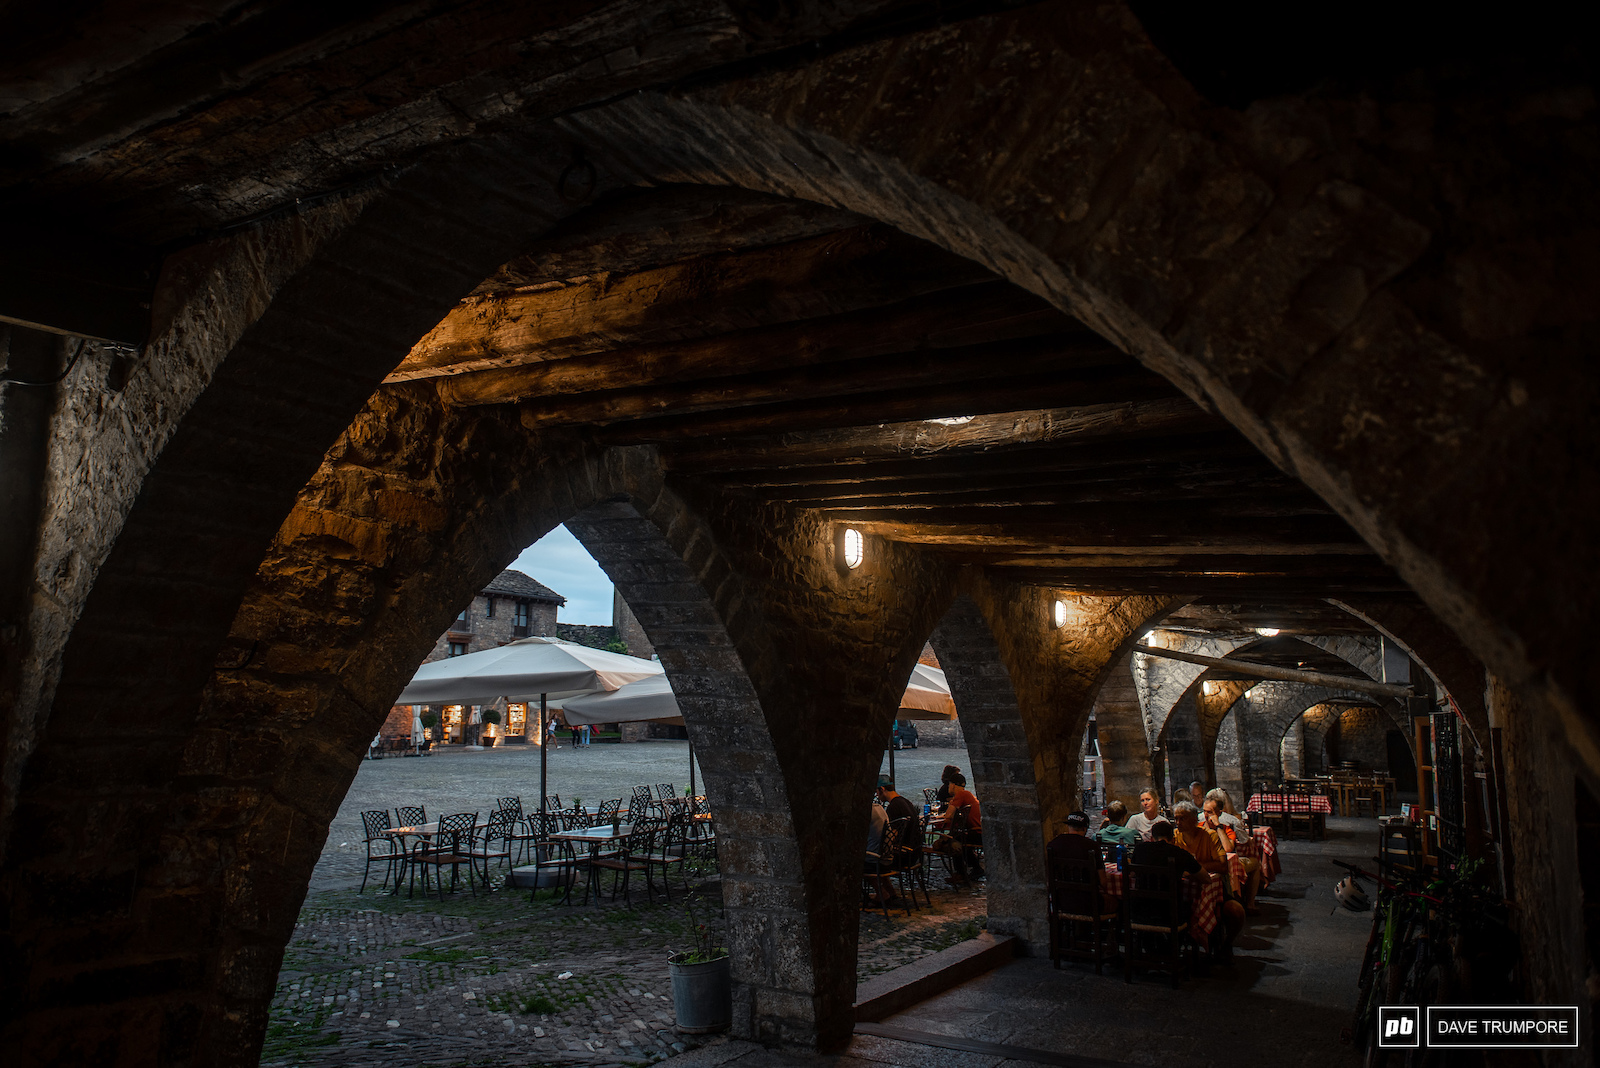 Bars and restaurants are tucked away within the intricate architecture found inside the ancient city walls.